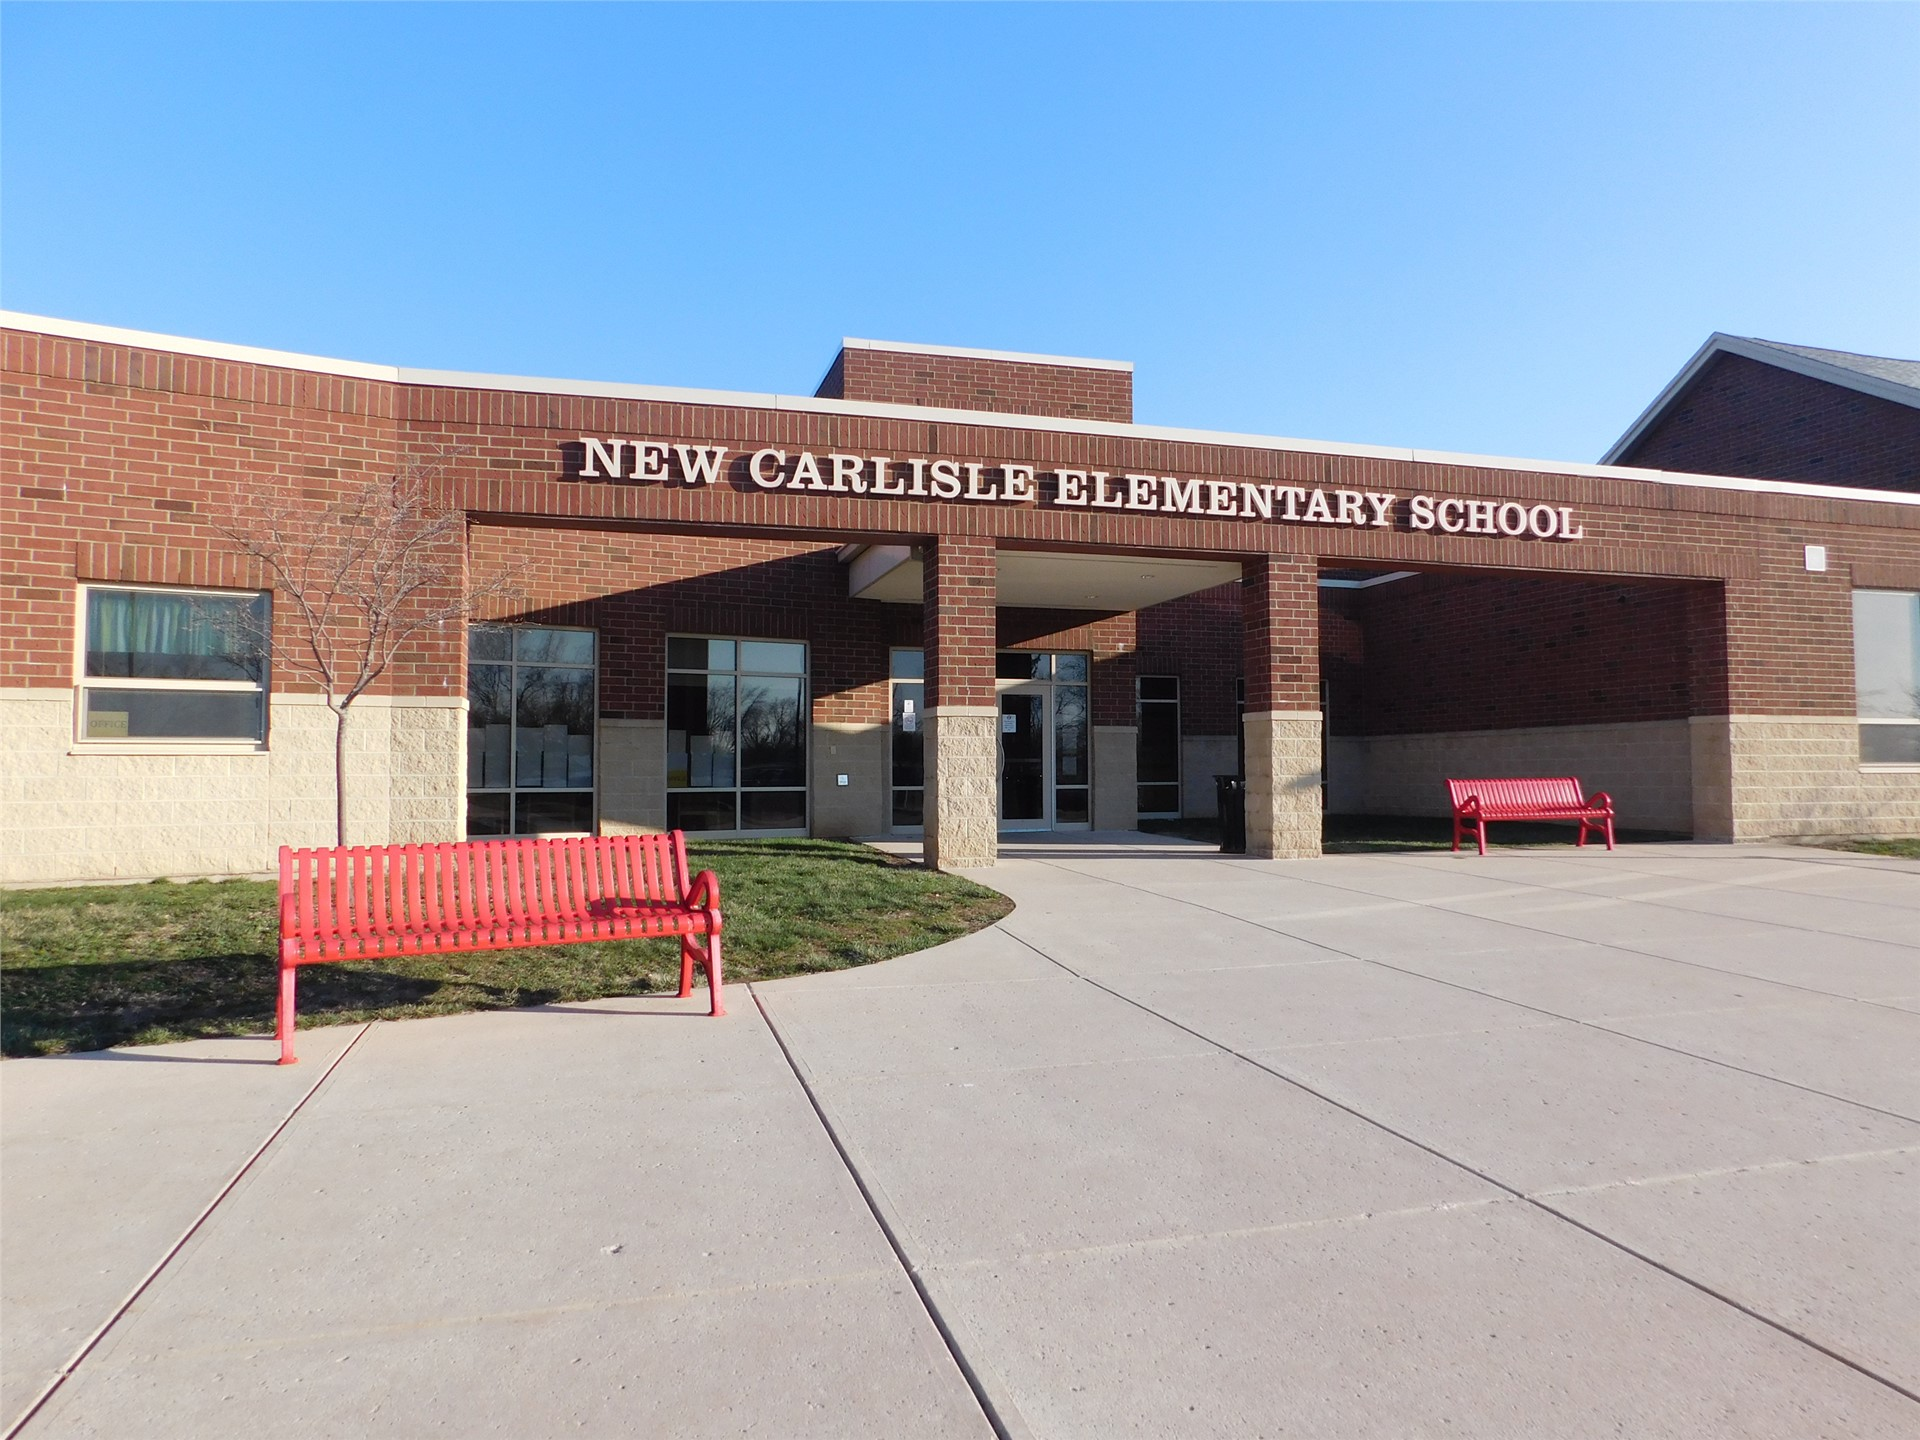 photo of the front of the New Carlisle Elementary School building